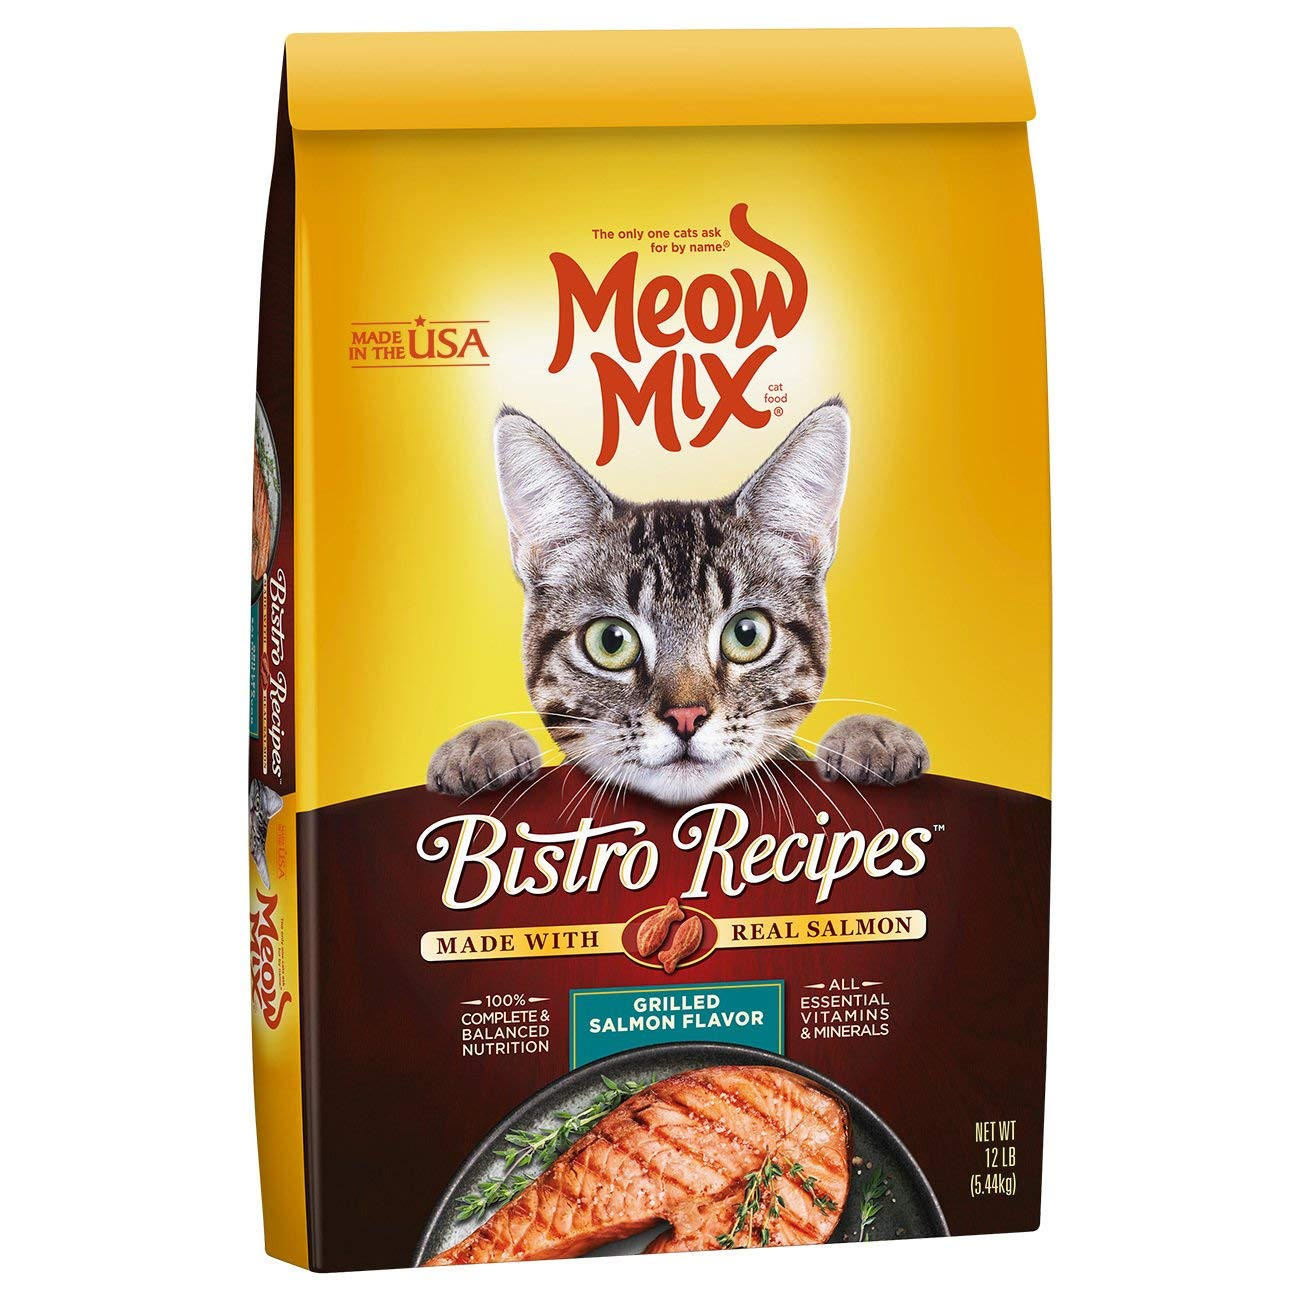 Meow Mix Bistro Recipes Grilled Salmon Flavor Dry Cat Food, 12 lb